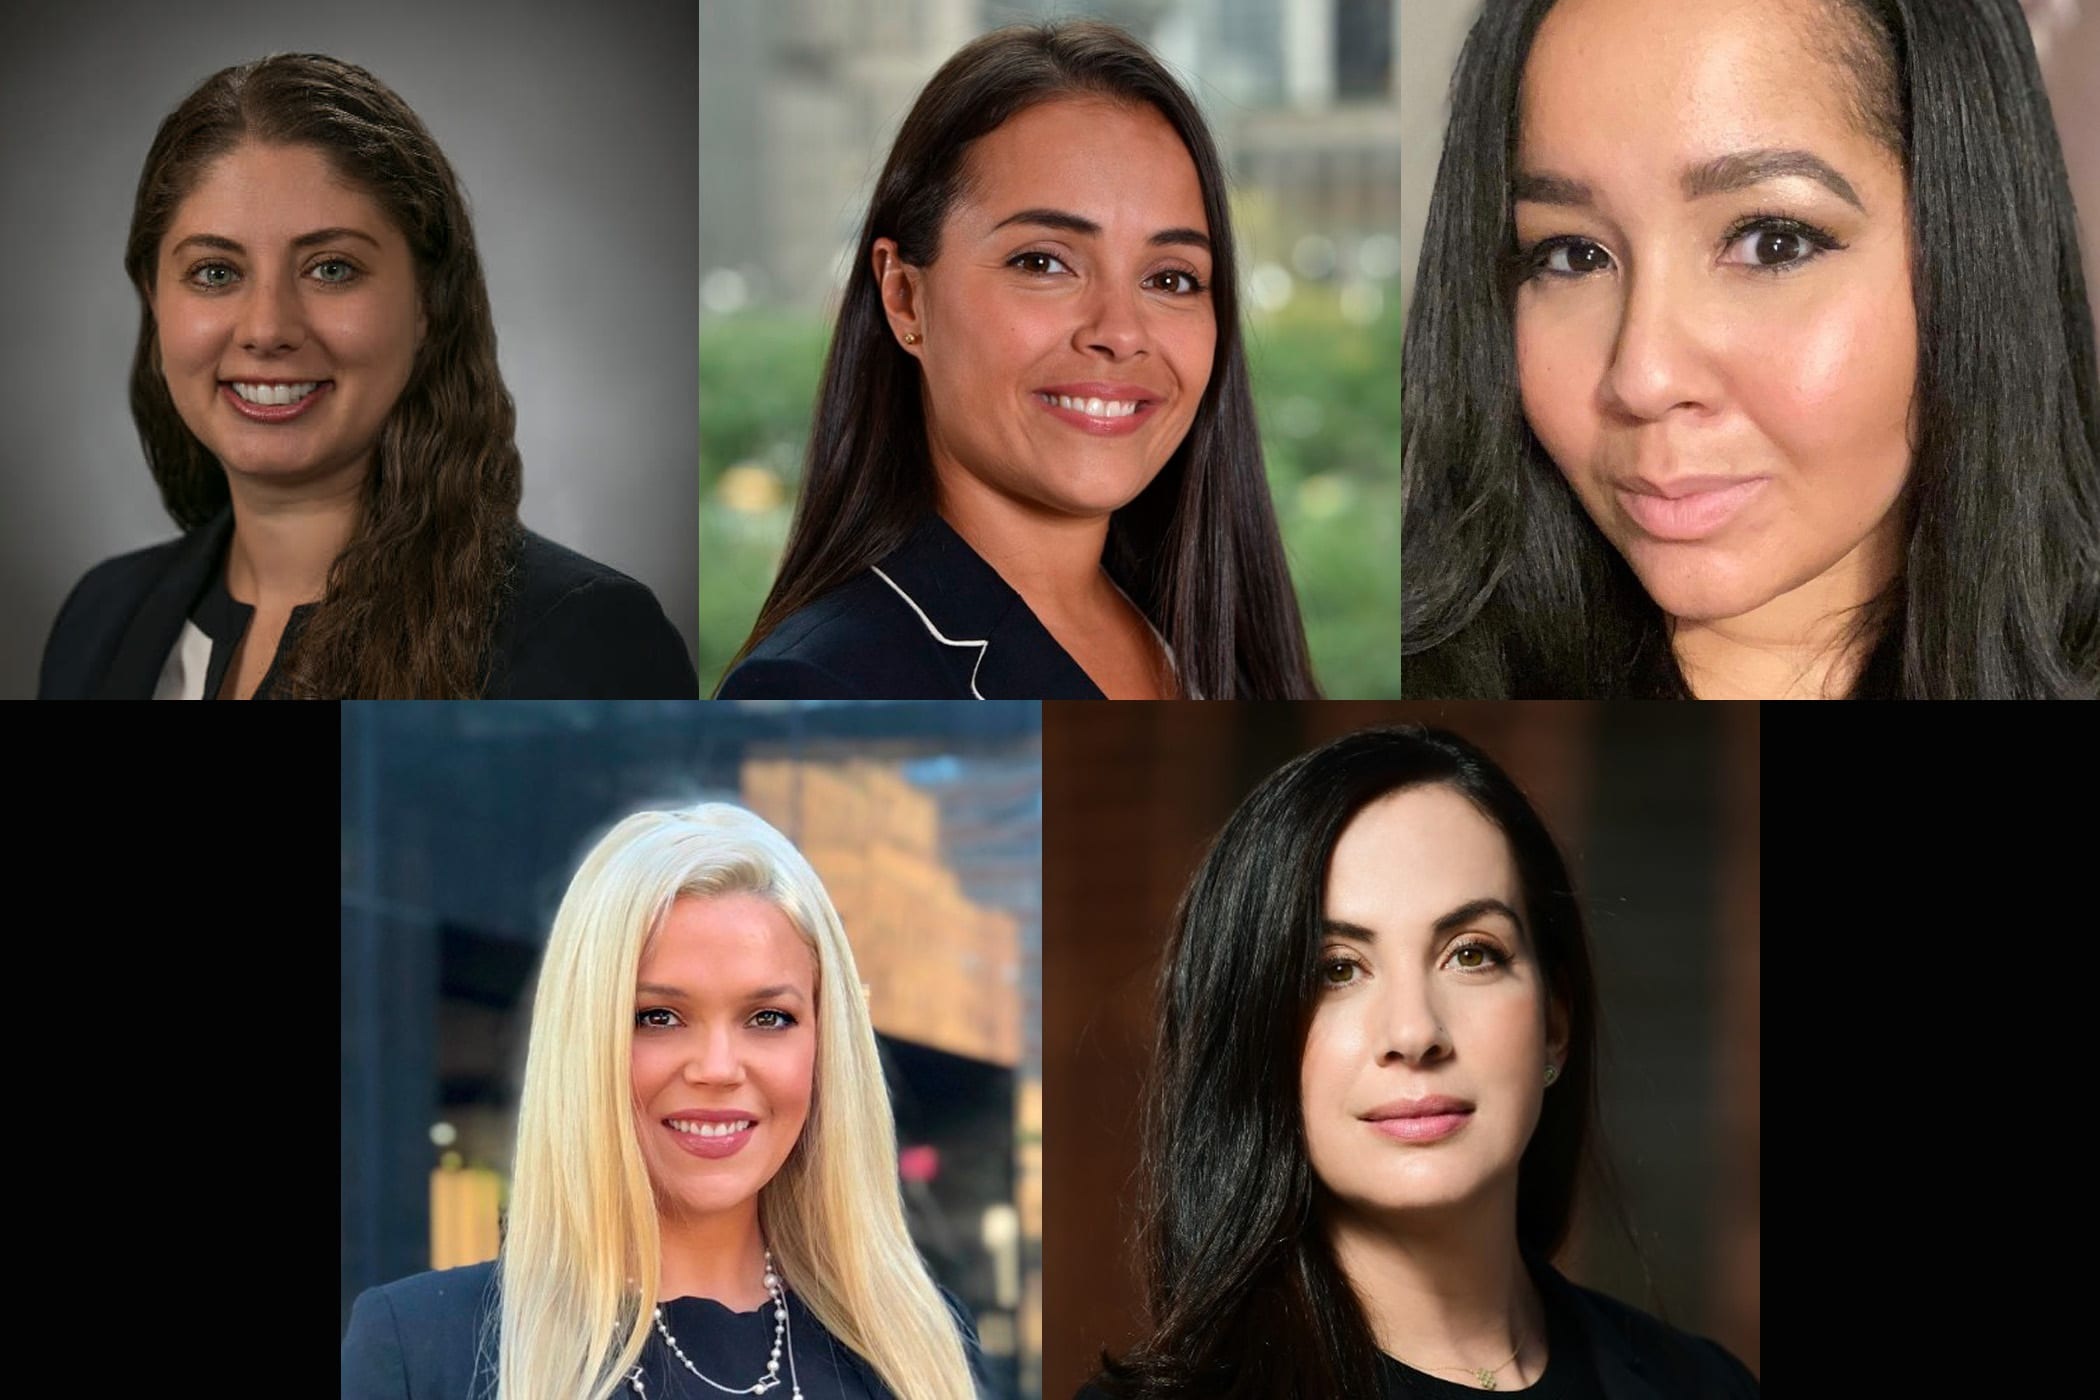 Women Panel 2 Top Female CRE Pros on the Future of Women in the Industry